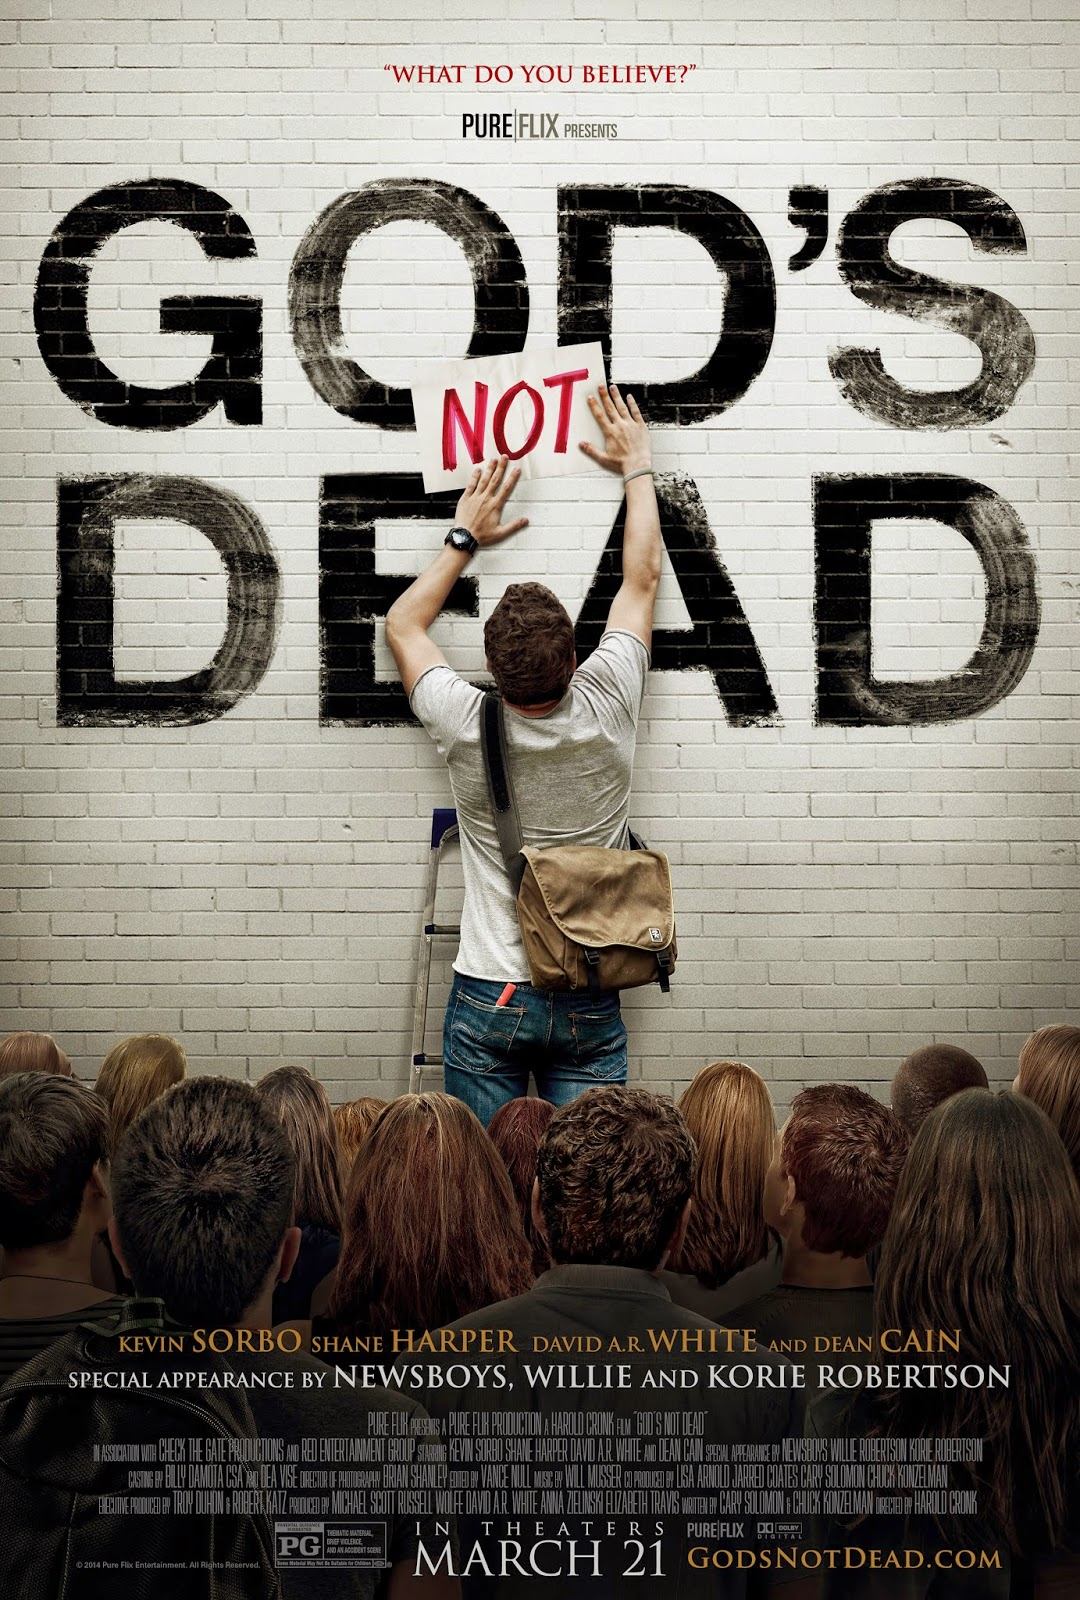 'God's Not Dead': The Only Christian Film In Theaters Worth Seeing